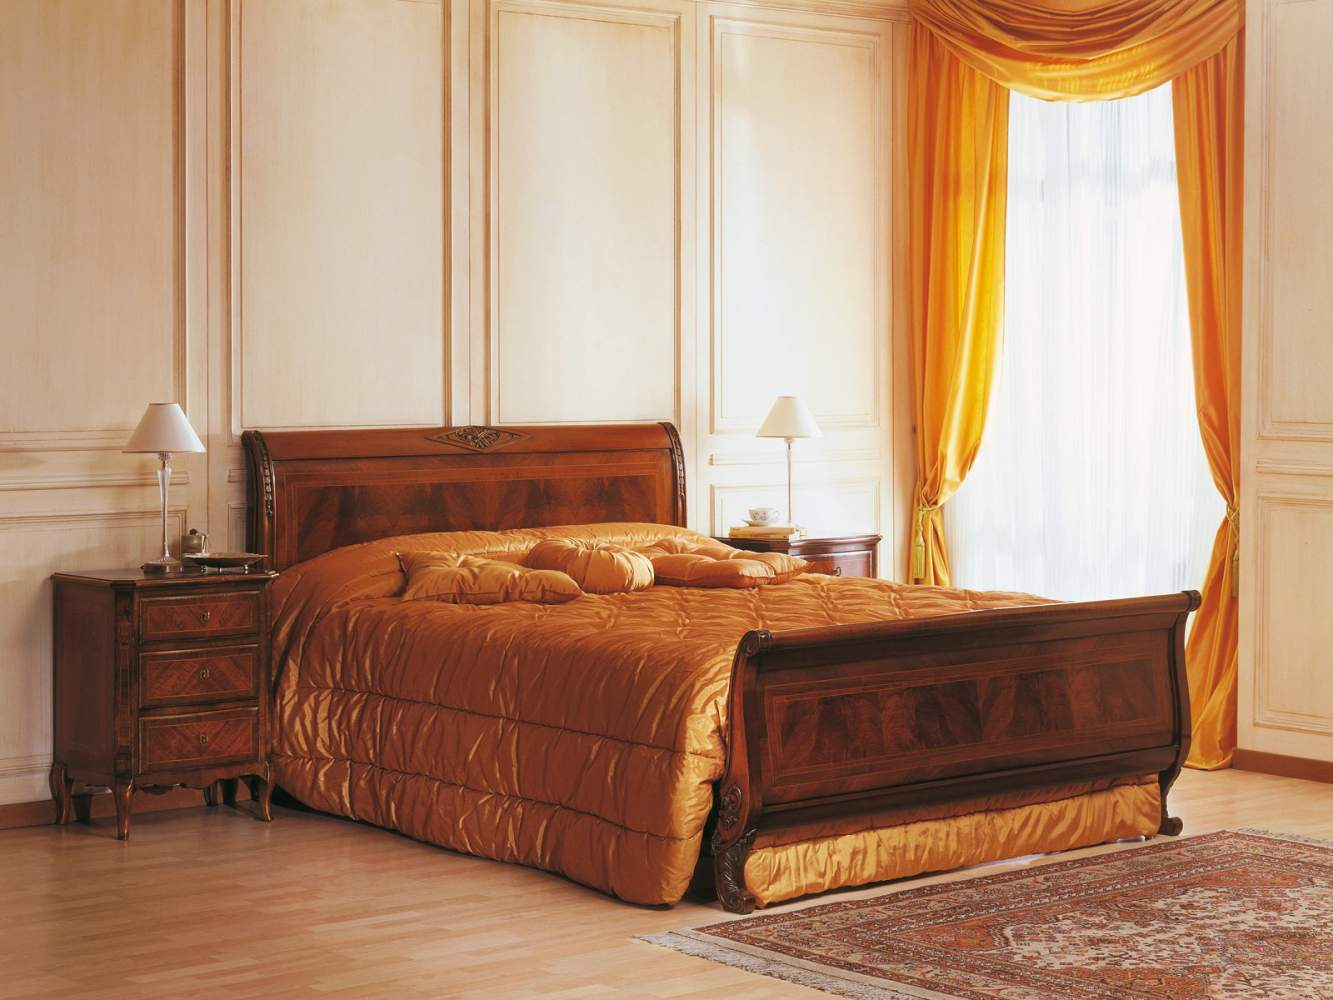 19th century french bedroom, walnut bed and night table